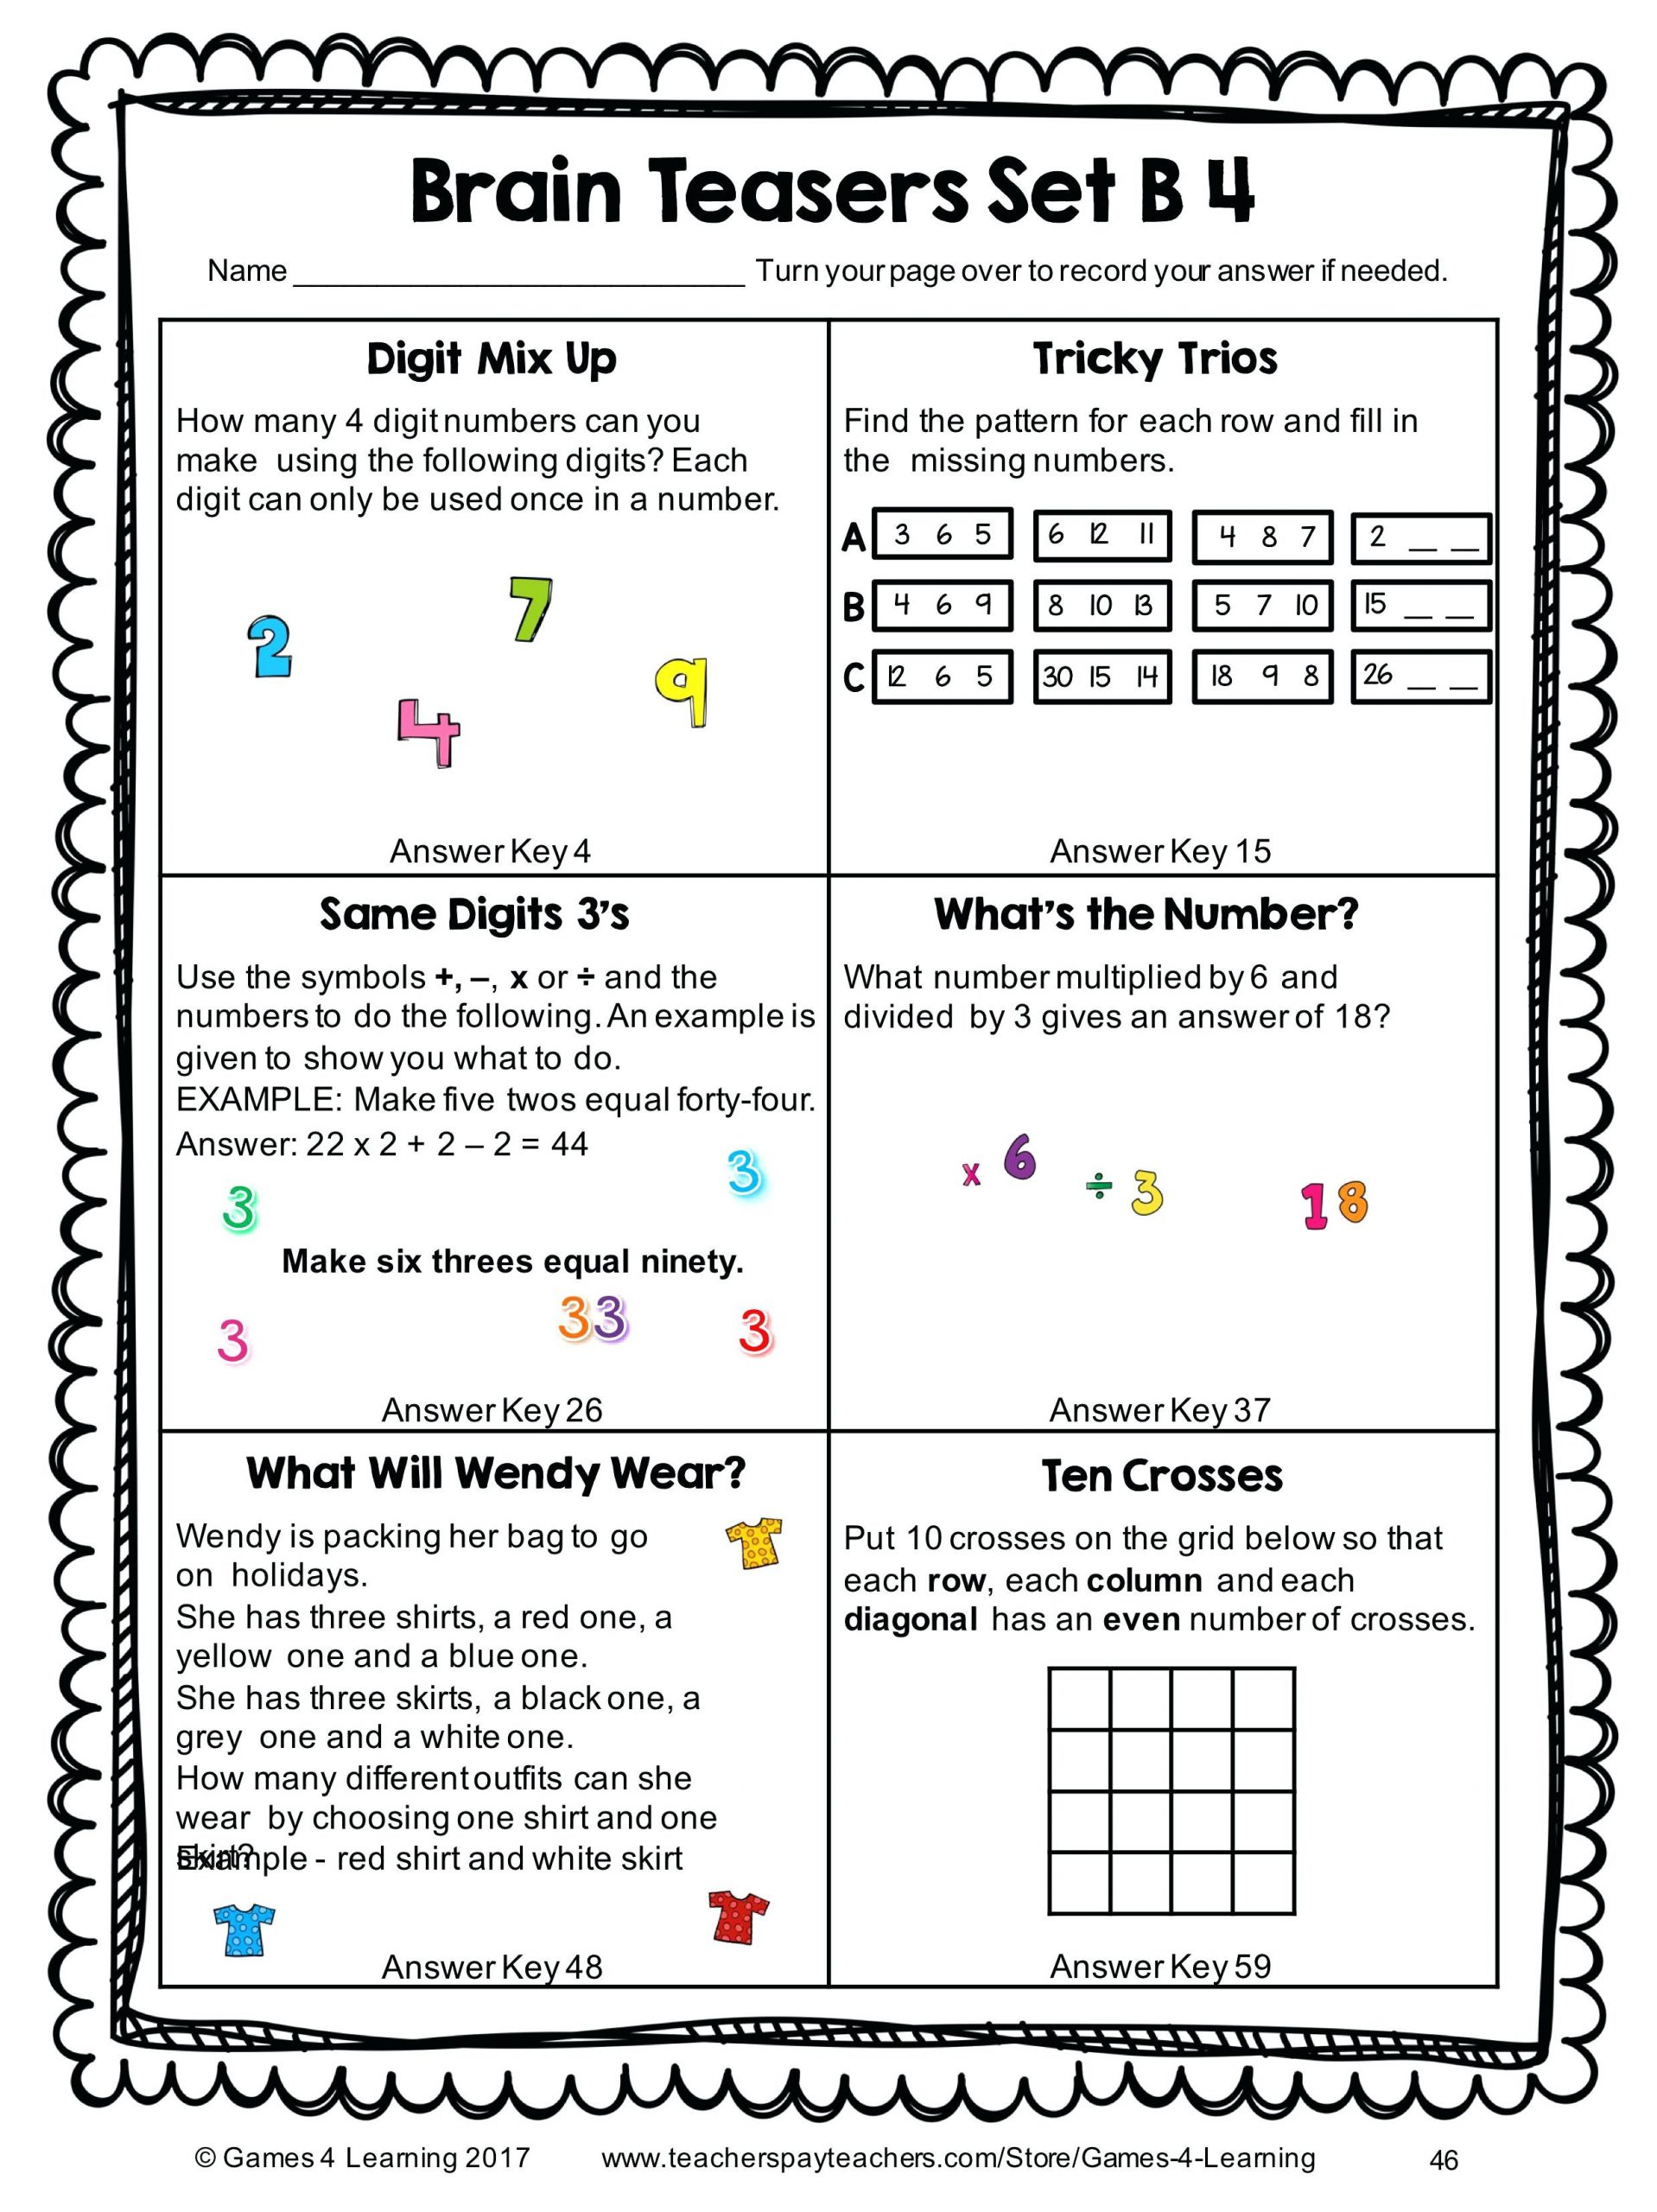 Brain Teasers Printable Worksheets 22 Interesting Printable Brain Teasers